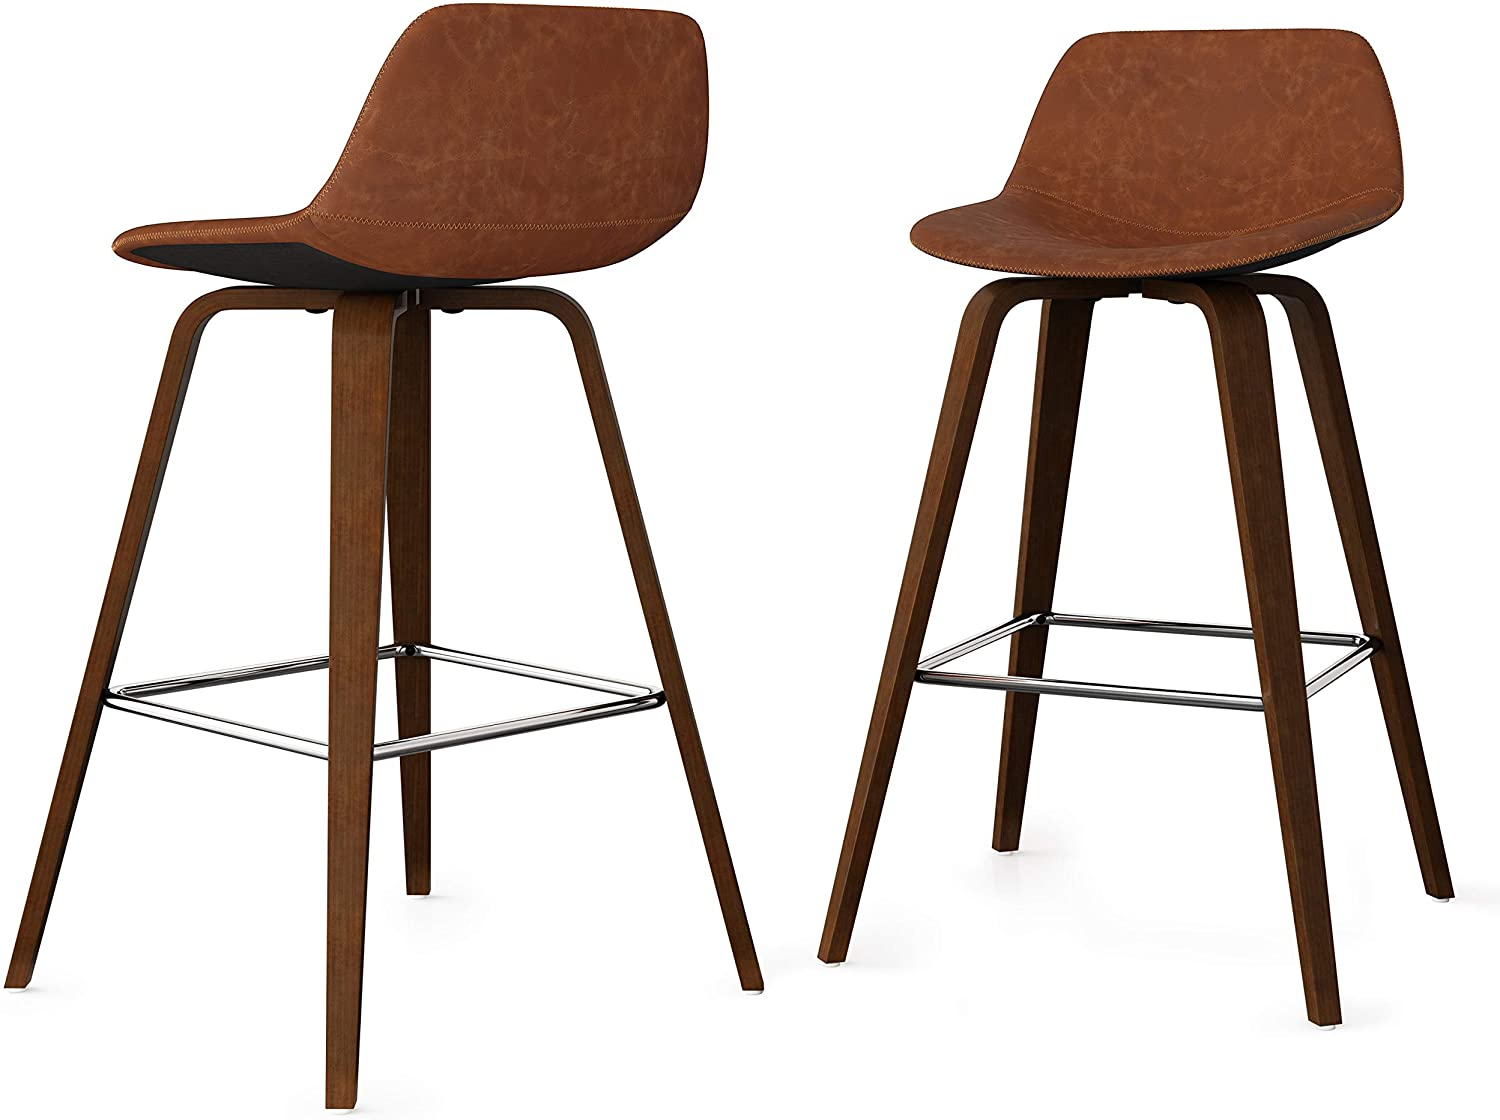 SIMPLIHOME Randolph Mid Century Modern Bentwood Counter Height Stool (Set of 2) in Deep Tan Faux Leather